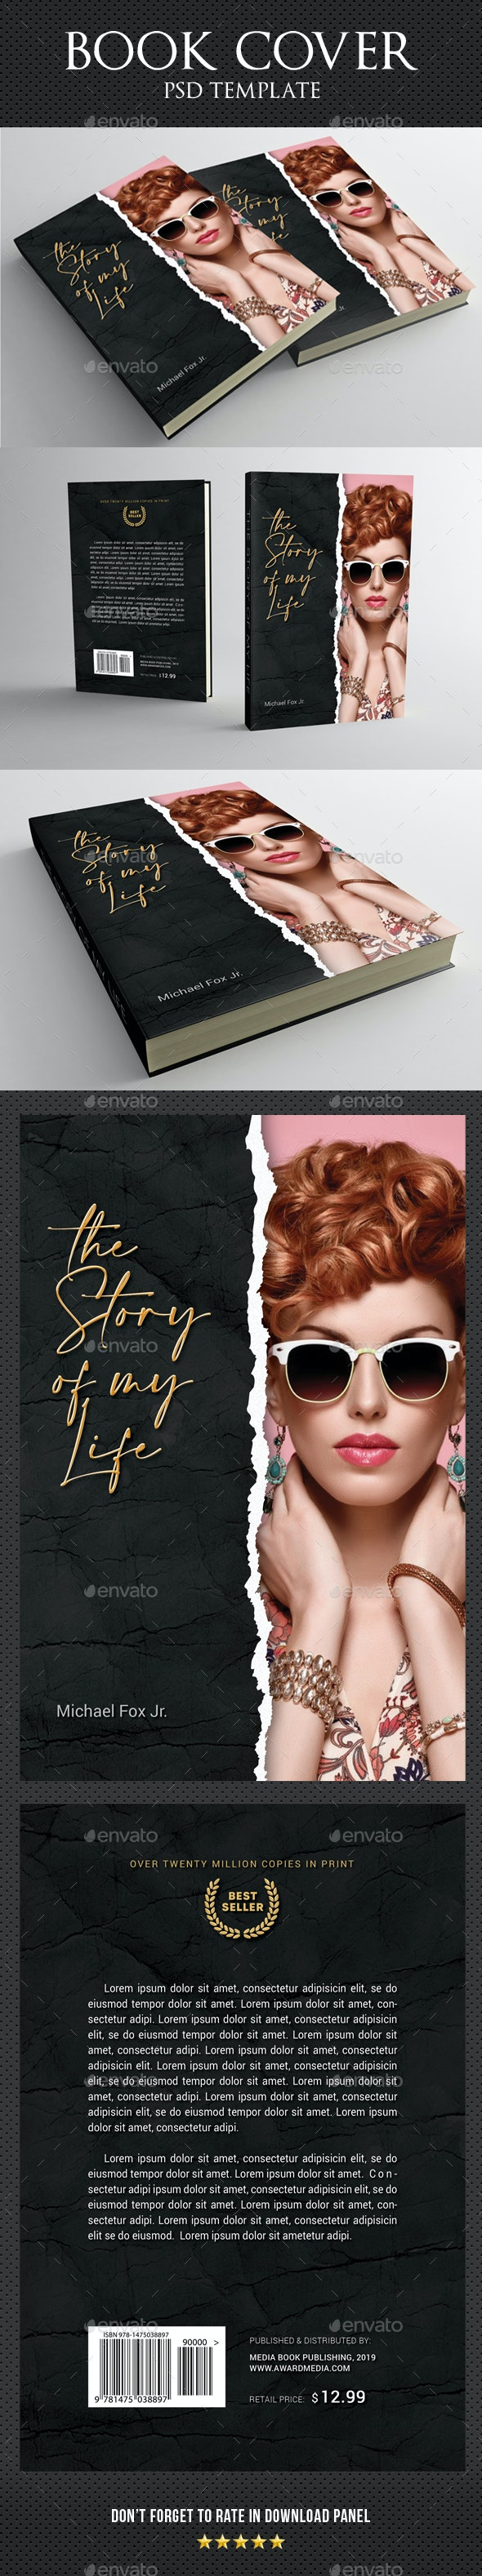 Book Cover Template 88 - Miscellaneous Print Templates